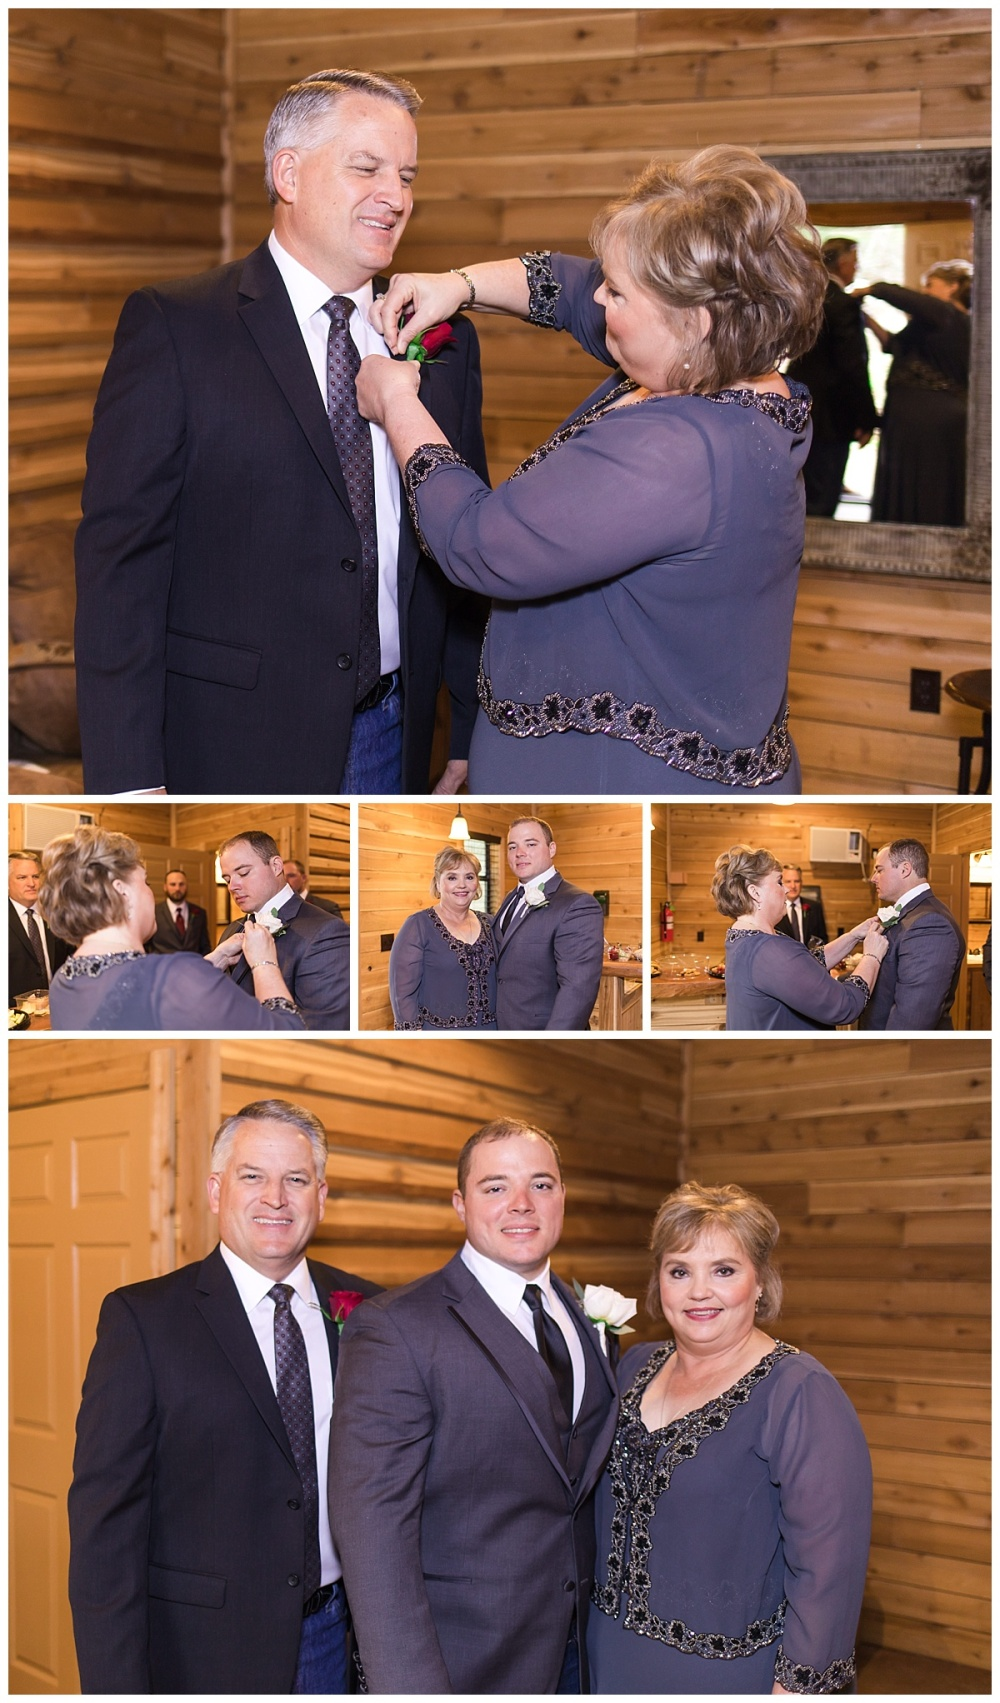 Carly-Barton-Photography-Geronimo-Oaks-Wedding-Venue-Texas-Hill-Country-Ronnie-Sarah_0087.jpg